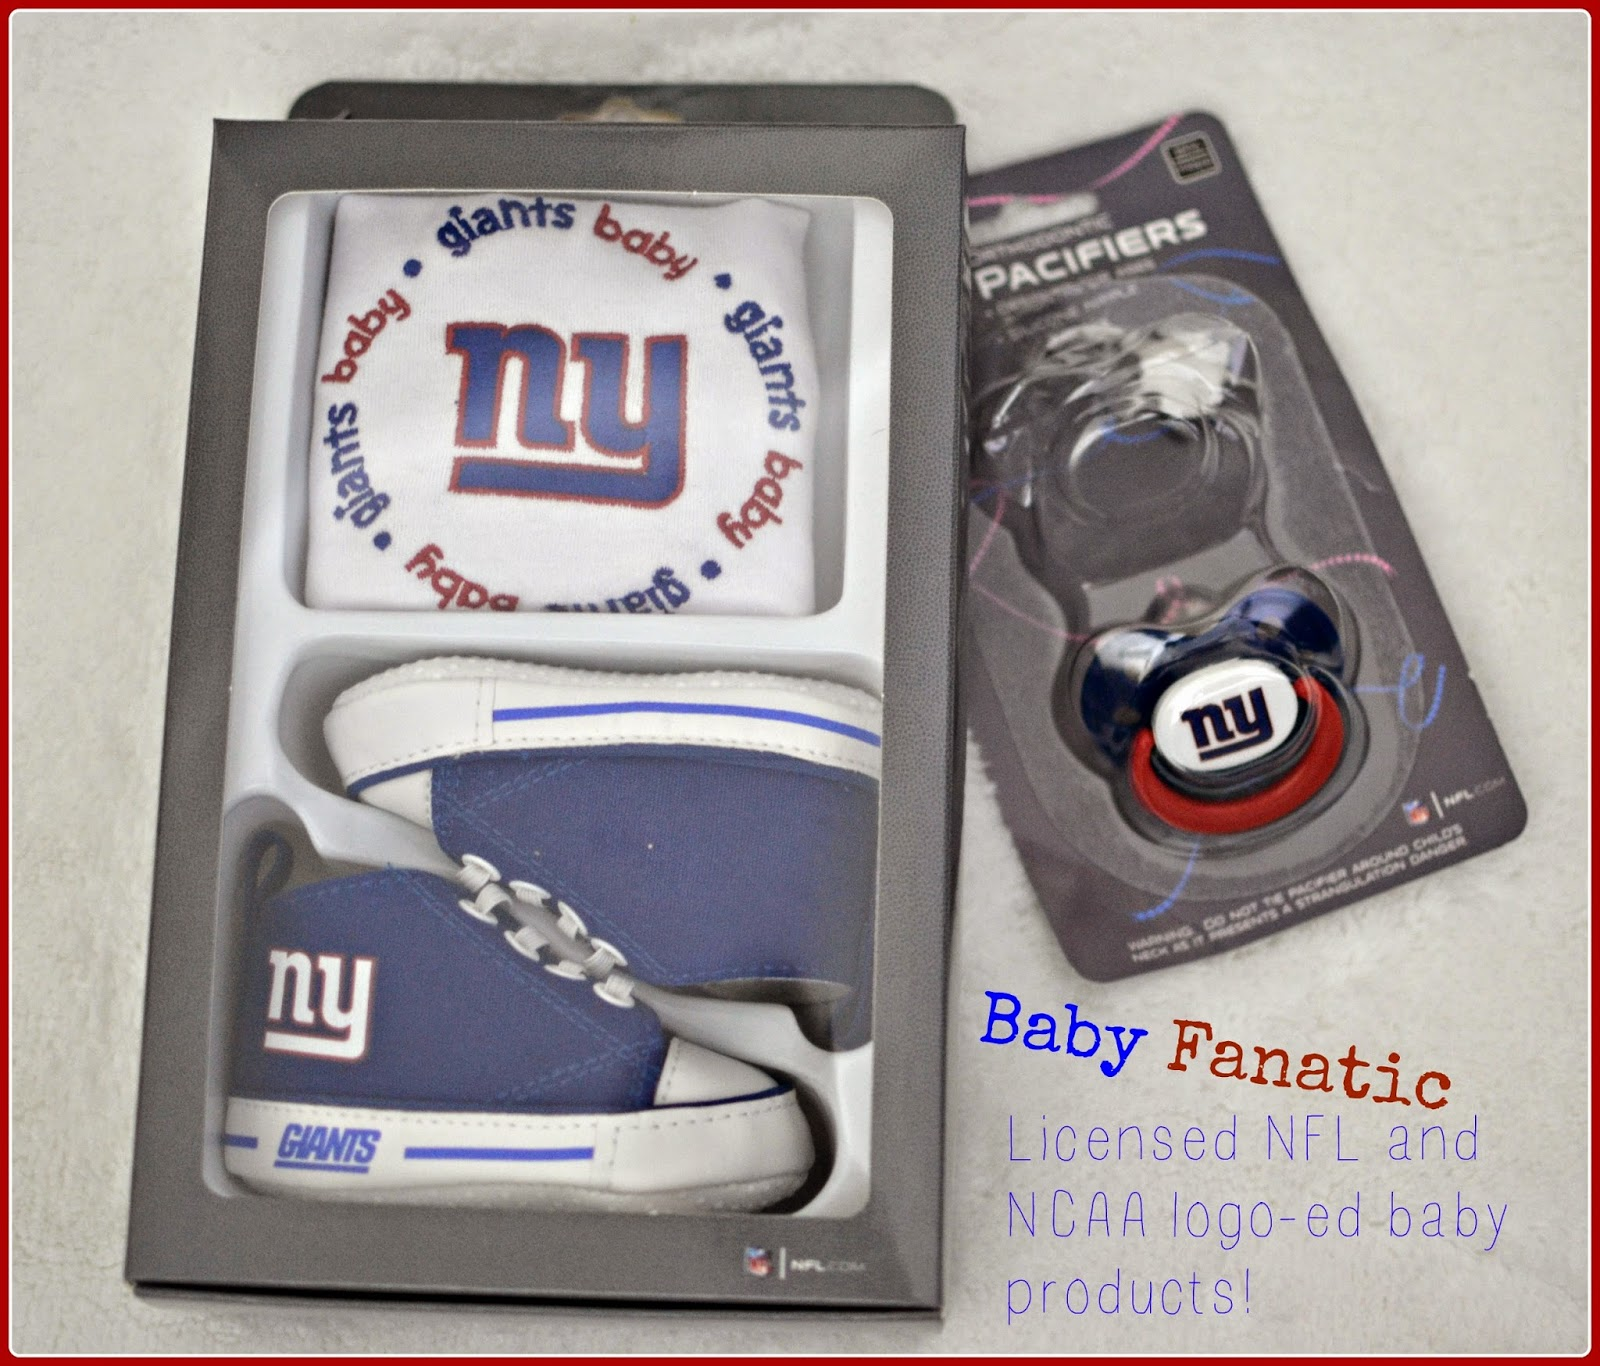 Baby Fanatic Gift Set #Giveaway